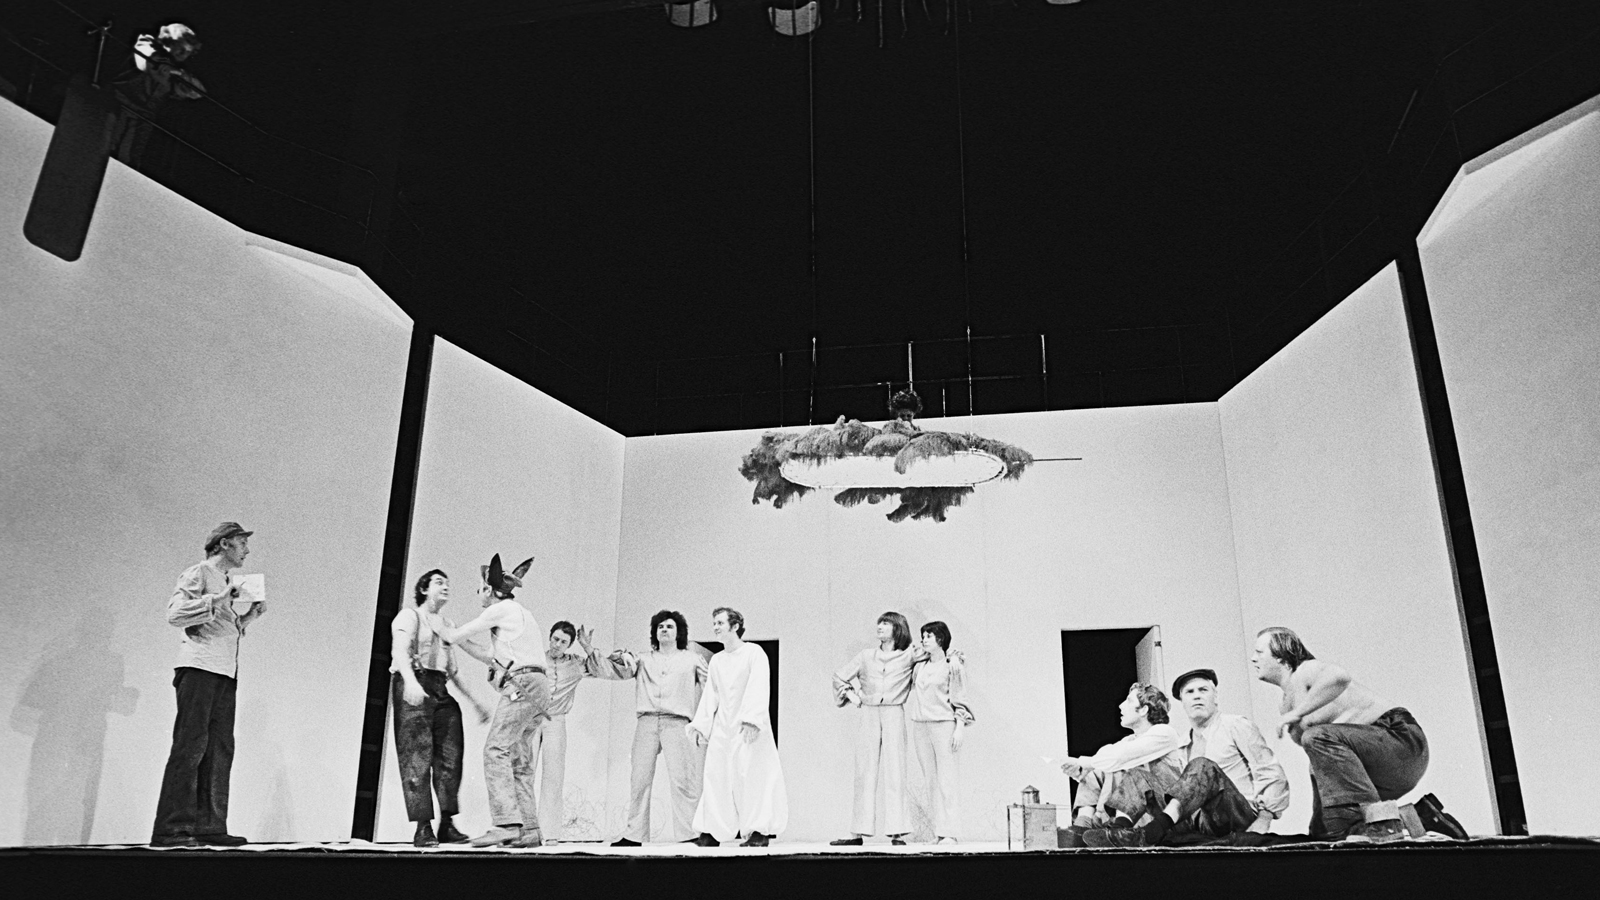 Mechanicals in a Midsummer Night's Dream